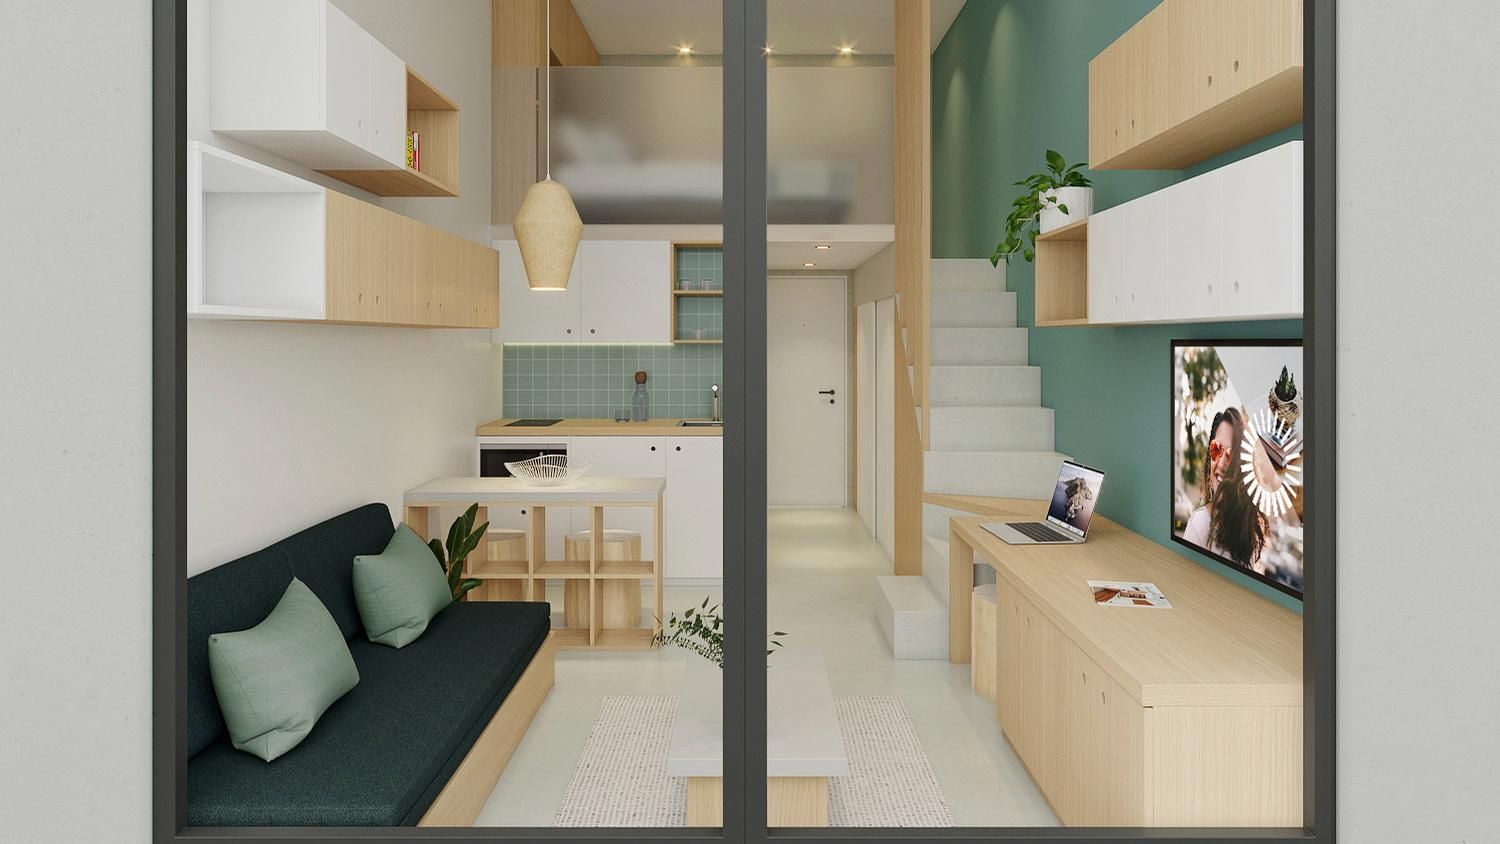 Room configurations vary depending on the needs of occupants, with bespoke furniture designed to make the best of space / PriestmanGoode